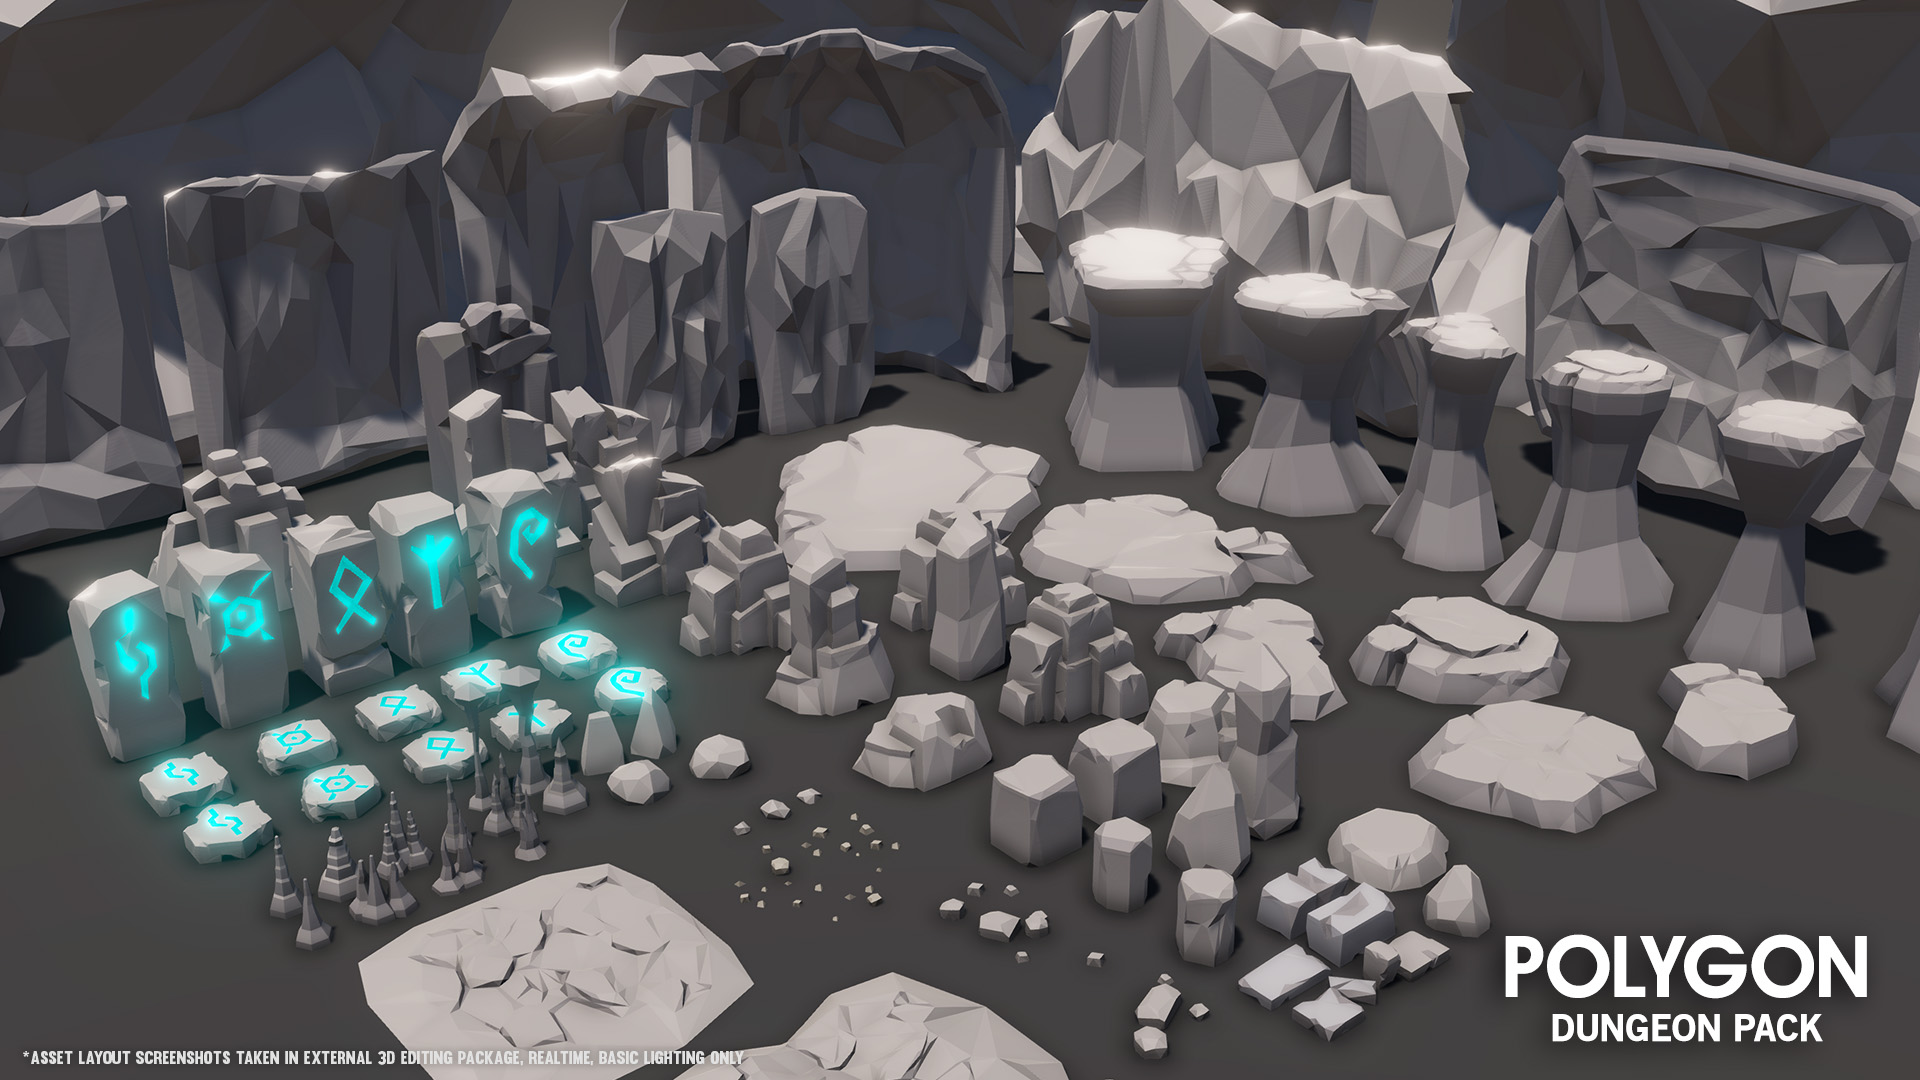 Polygon Dungeon Pack